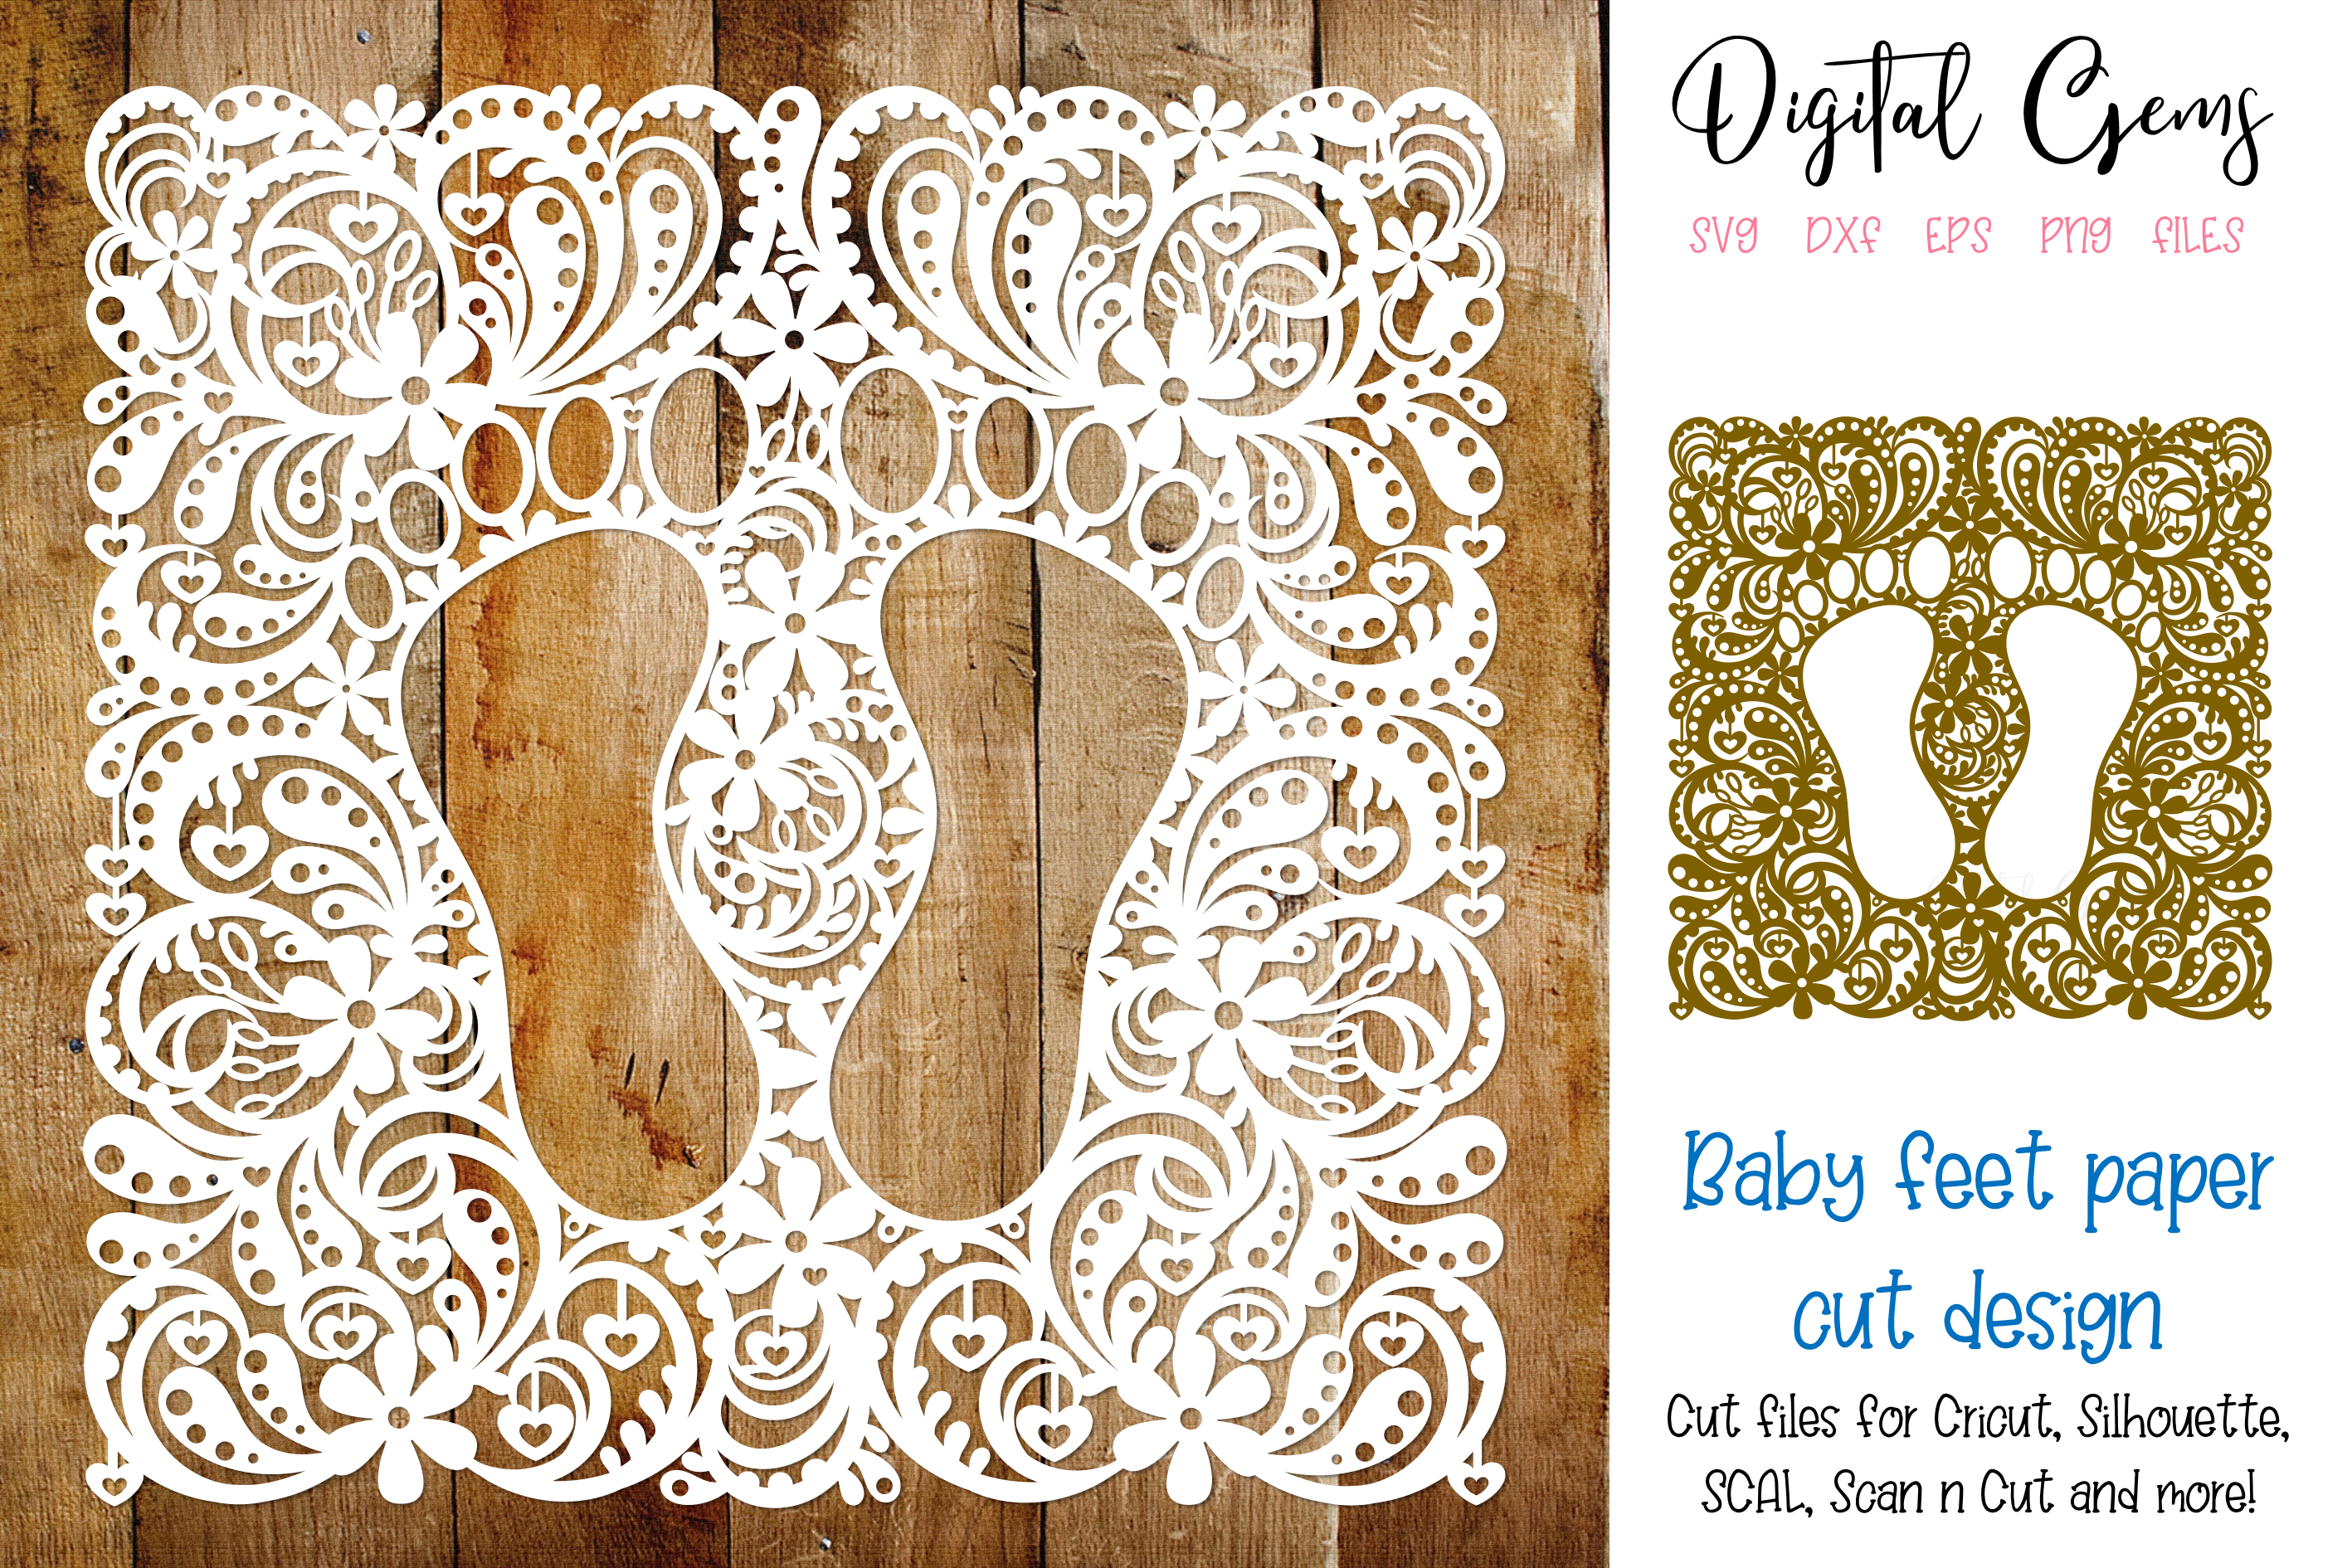 Download Free Baby Feet Paper Cut Design Graphic By Digital Gems Creative Fabrica for Cricut Explore, Silhouette and other cutting machines.